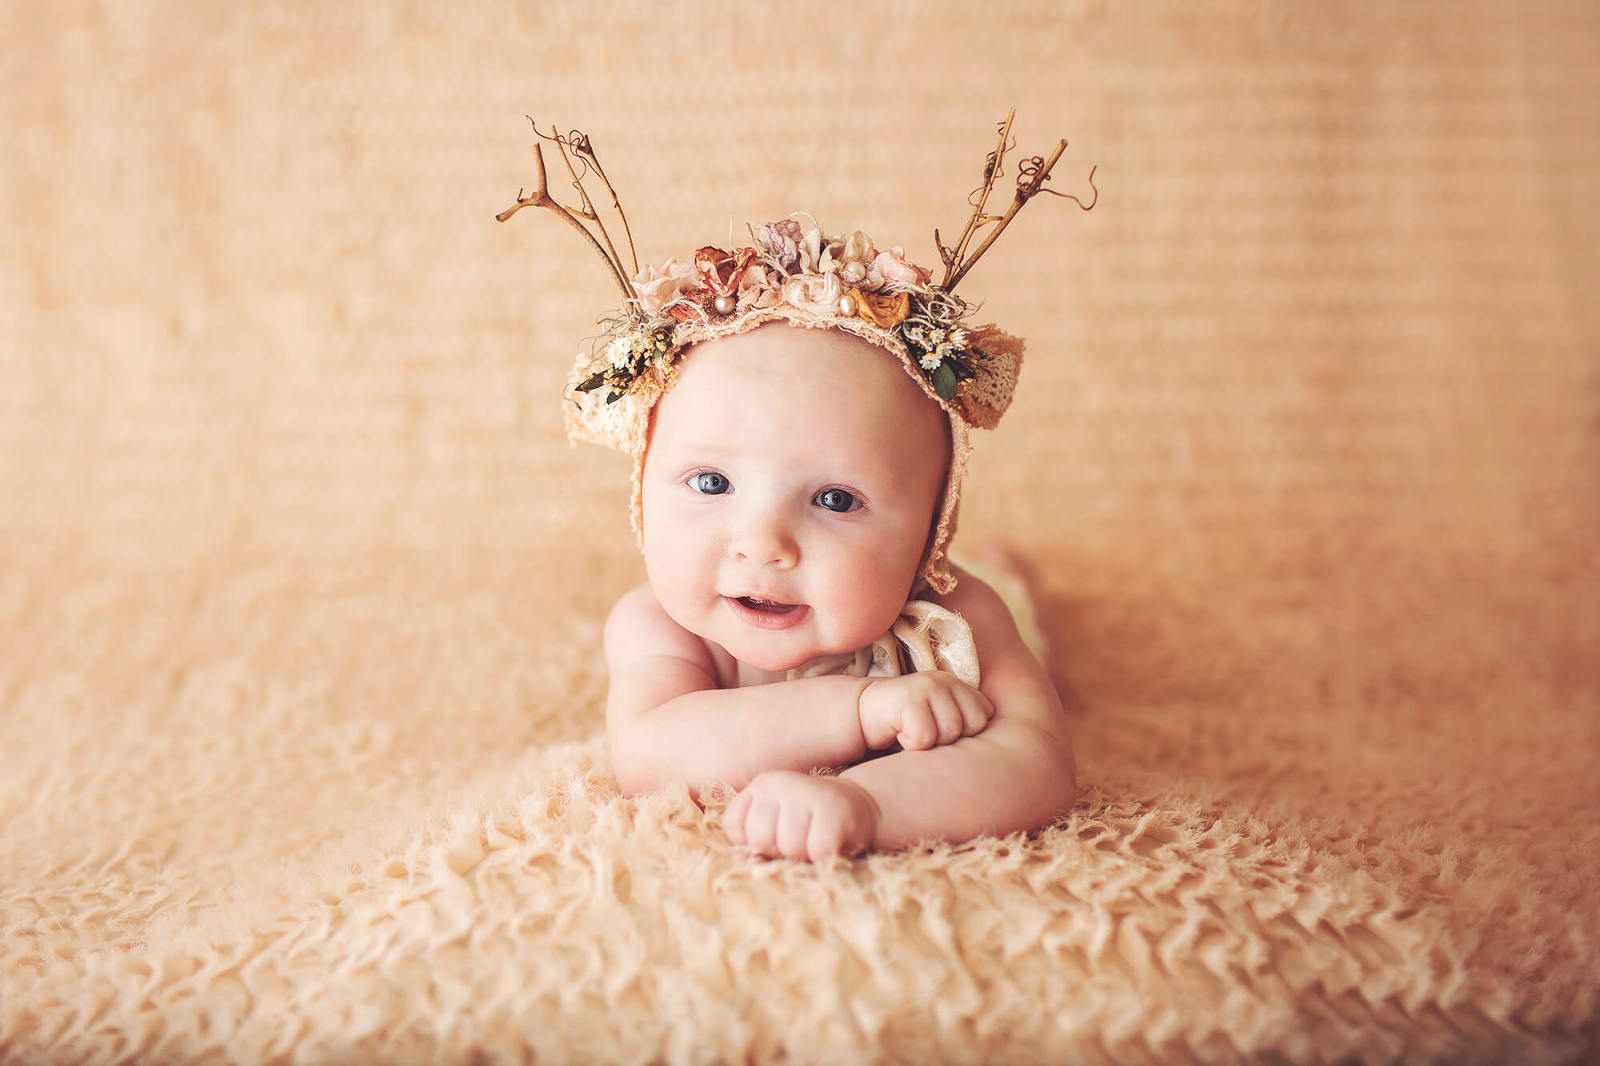 Three-month old baby girl in a peach, floral deer bonnet during her milestone session